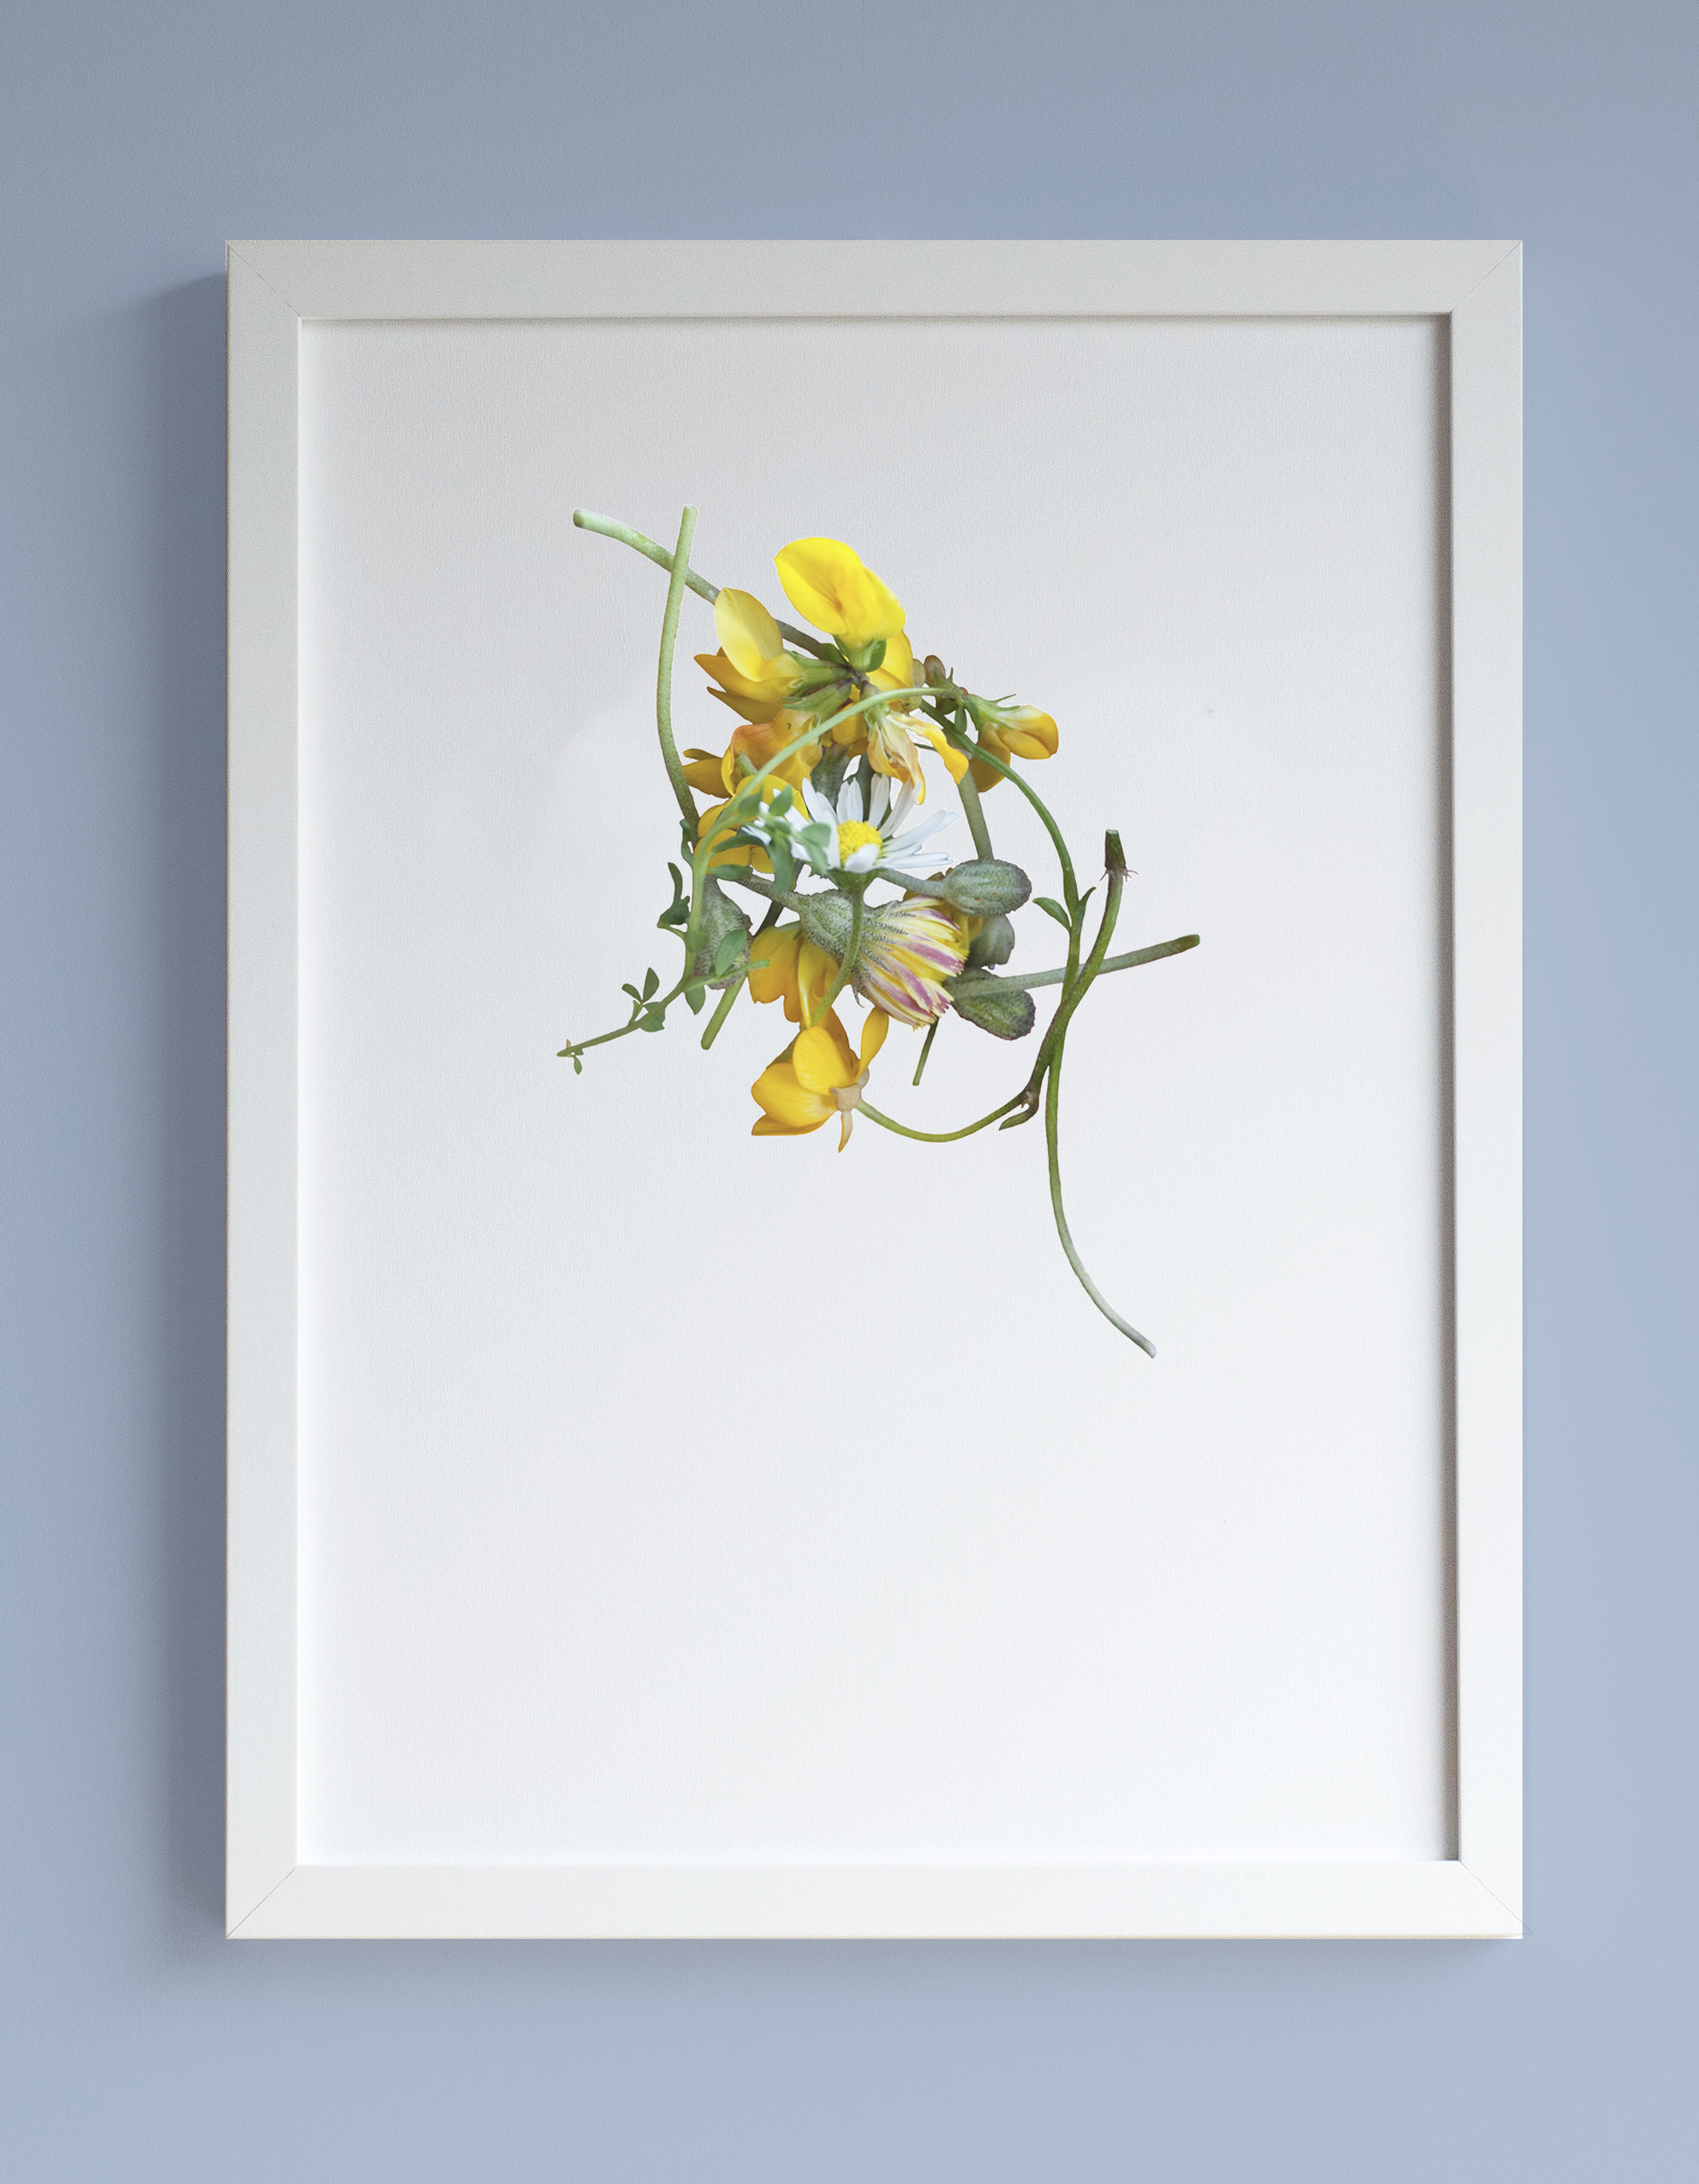 Image of framed print featuring buttercups, dandelions and a daisy